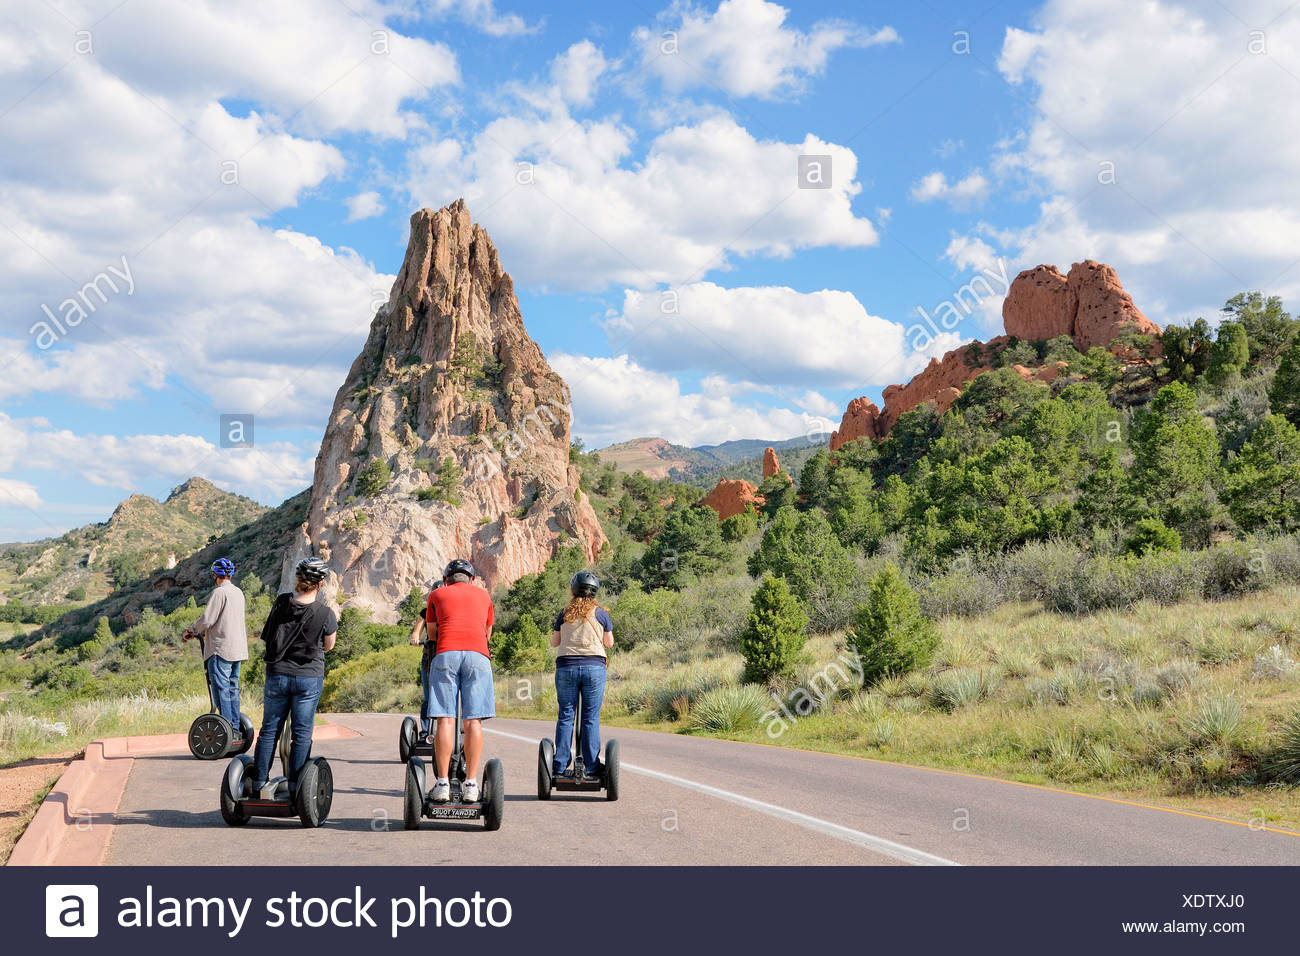 Young people riding Segways in front of Gray Rock or Cathedral Rock, Garden of the Gods, red sandstone rocks, Colorado Springs - Stock Image